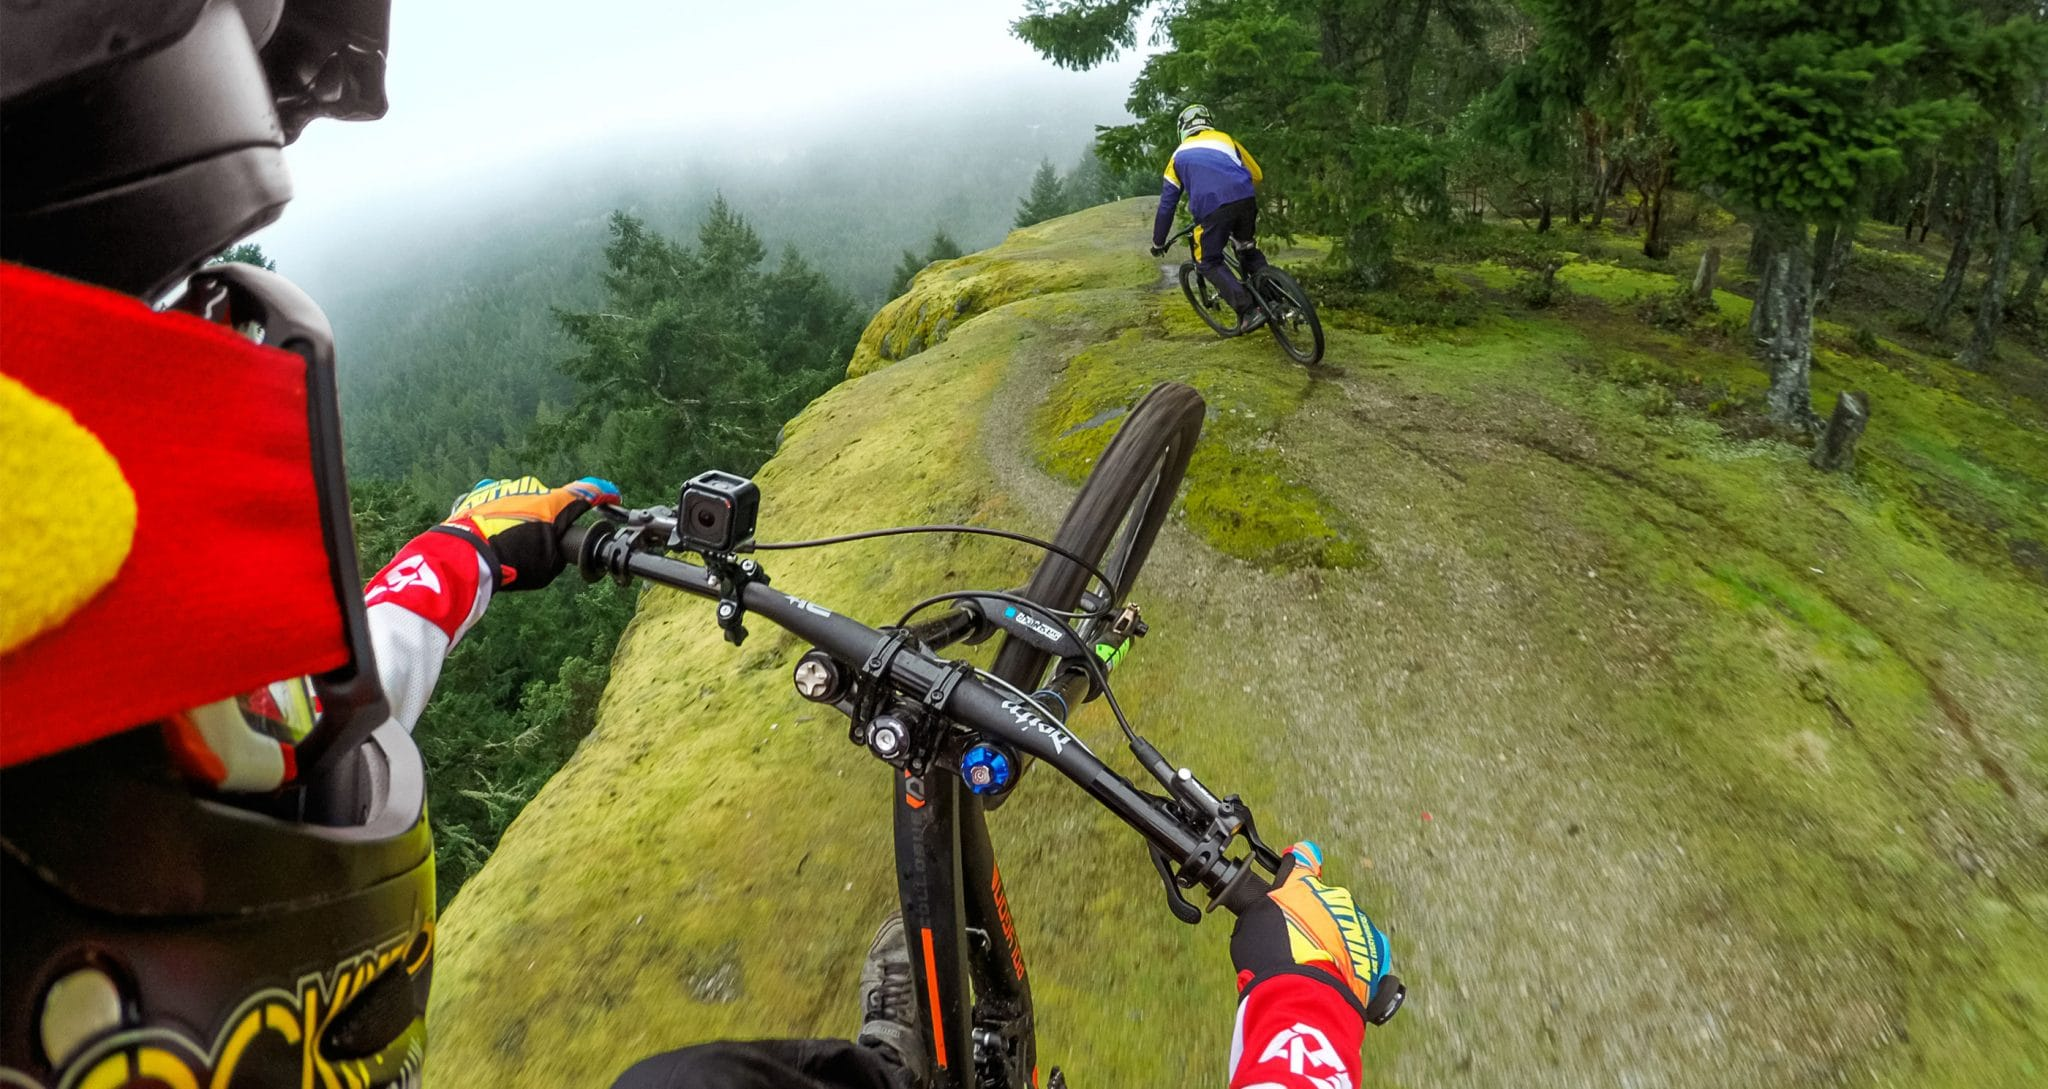 GoPro's Latest: The Hero4 Session Camera